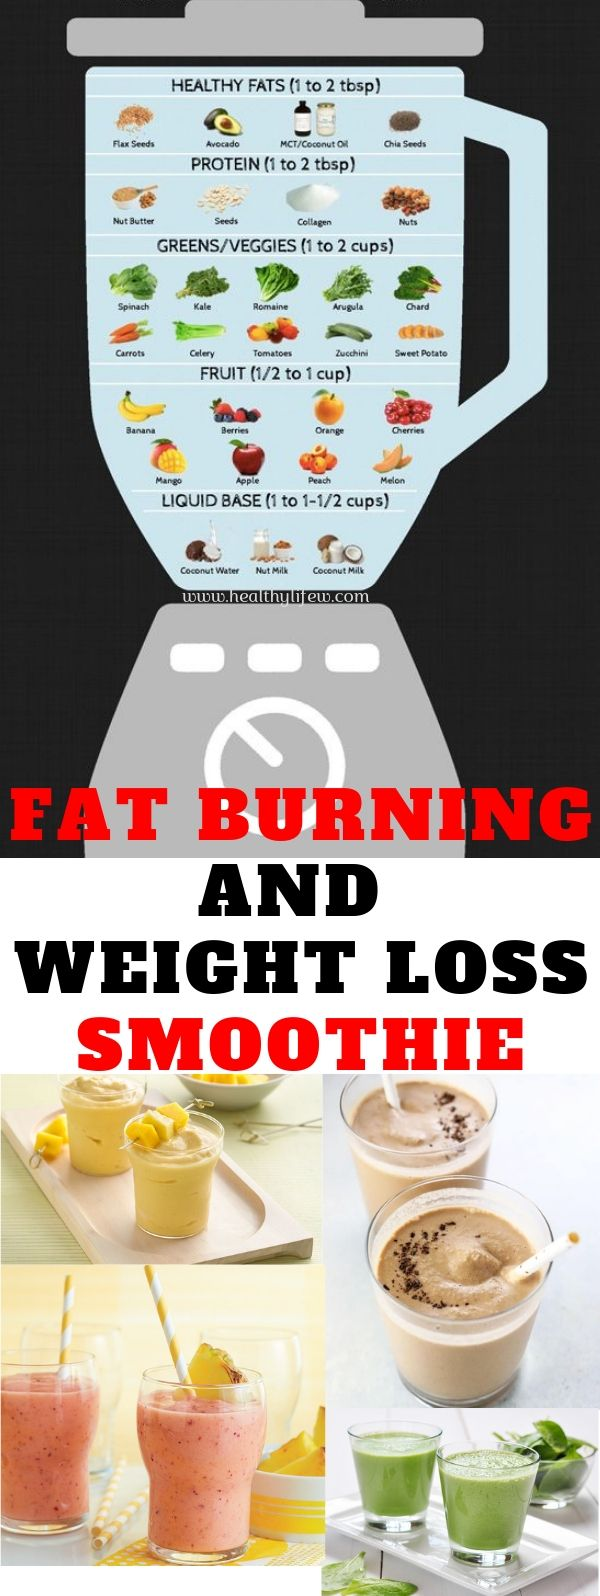 10 healthy smoothie recipe for weight loss and fat burning